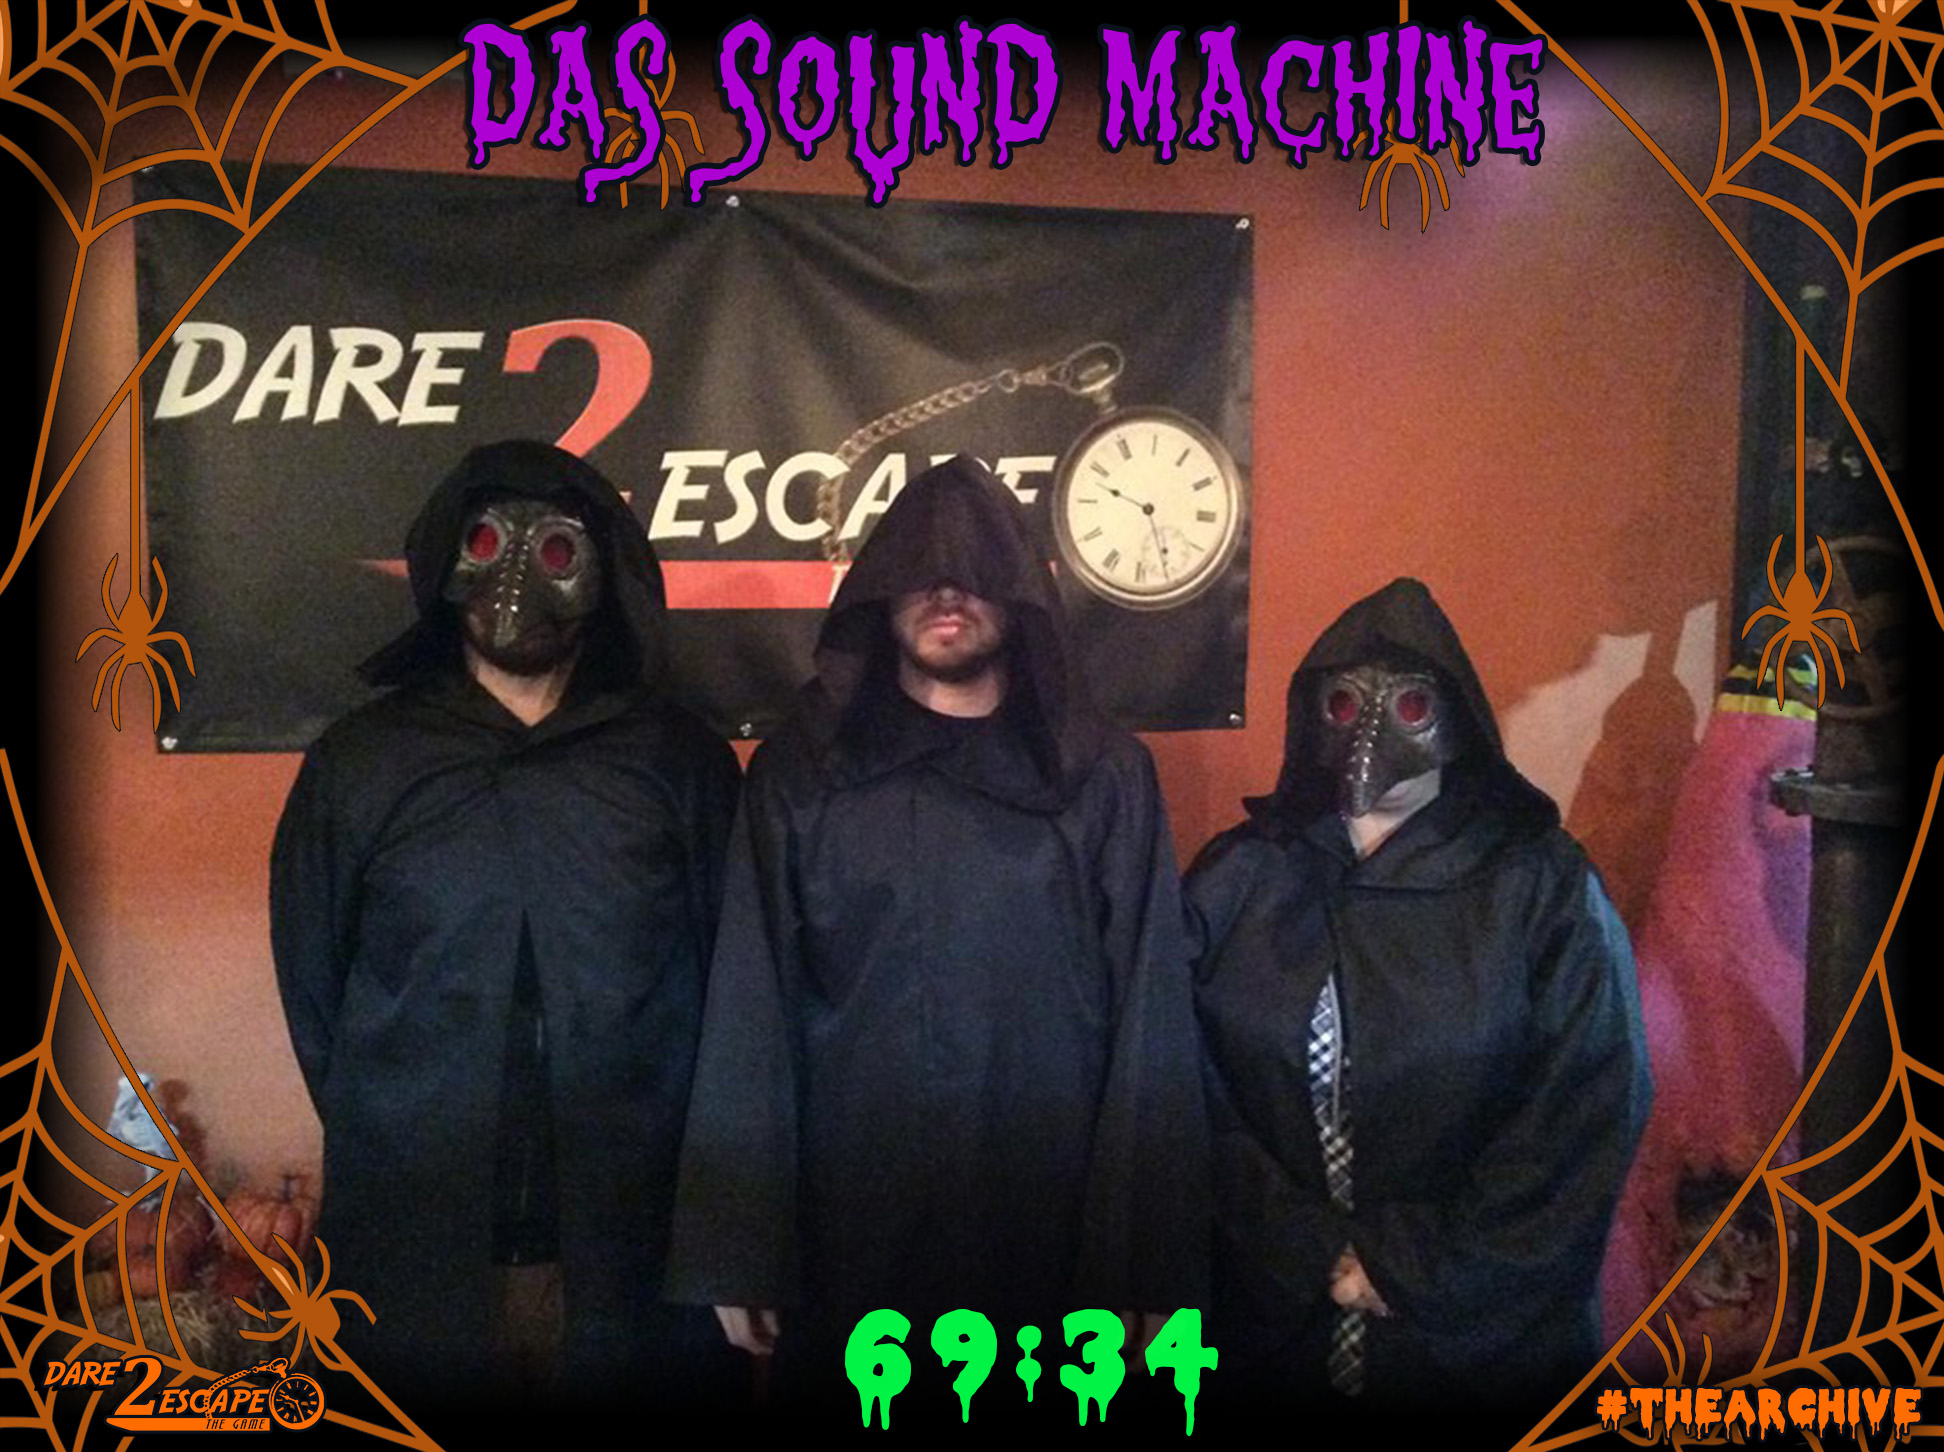 Das Sound Machine 6934.jpg